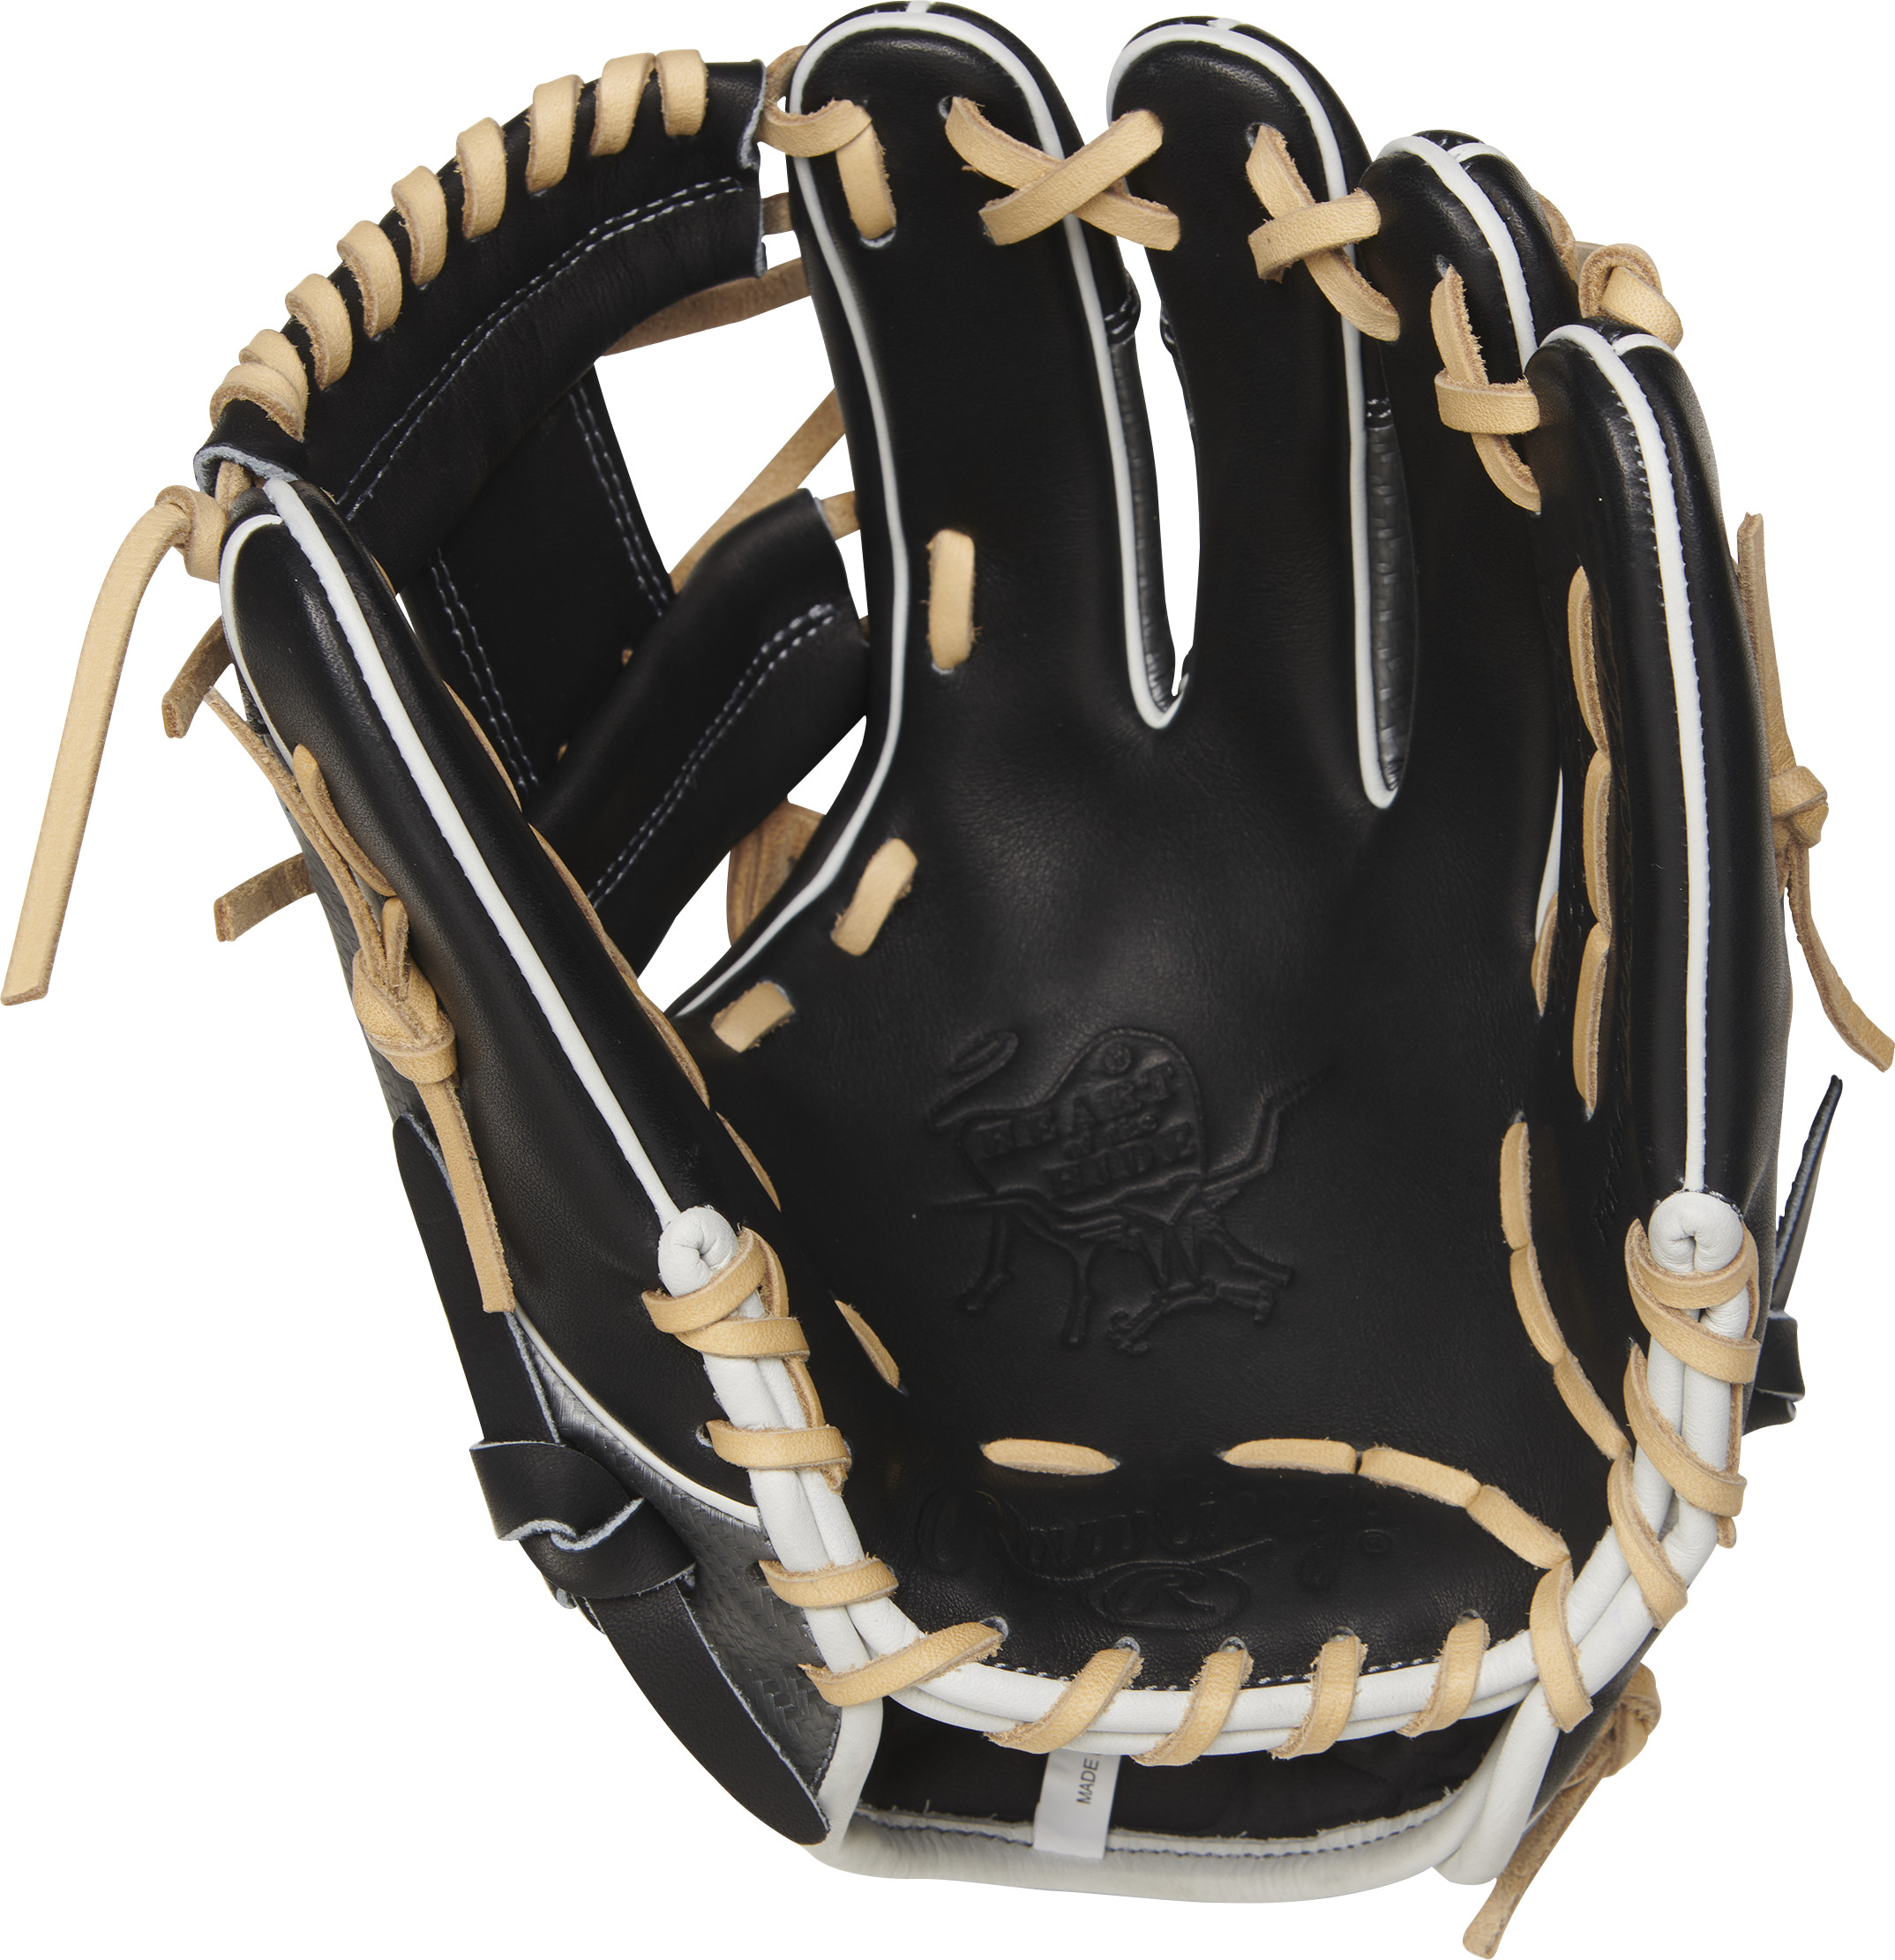 http://www.bestbatdeals.com/images/gloves/rawlings/PRO204-2BCF-1.jpg